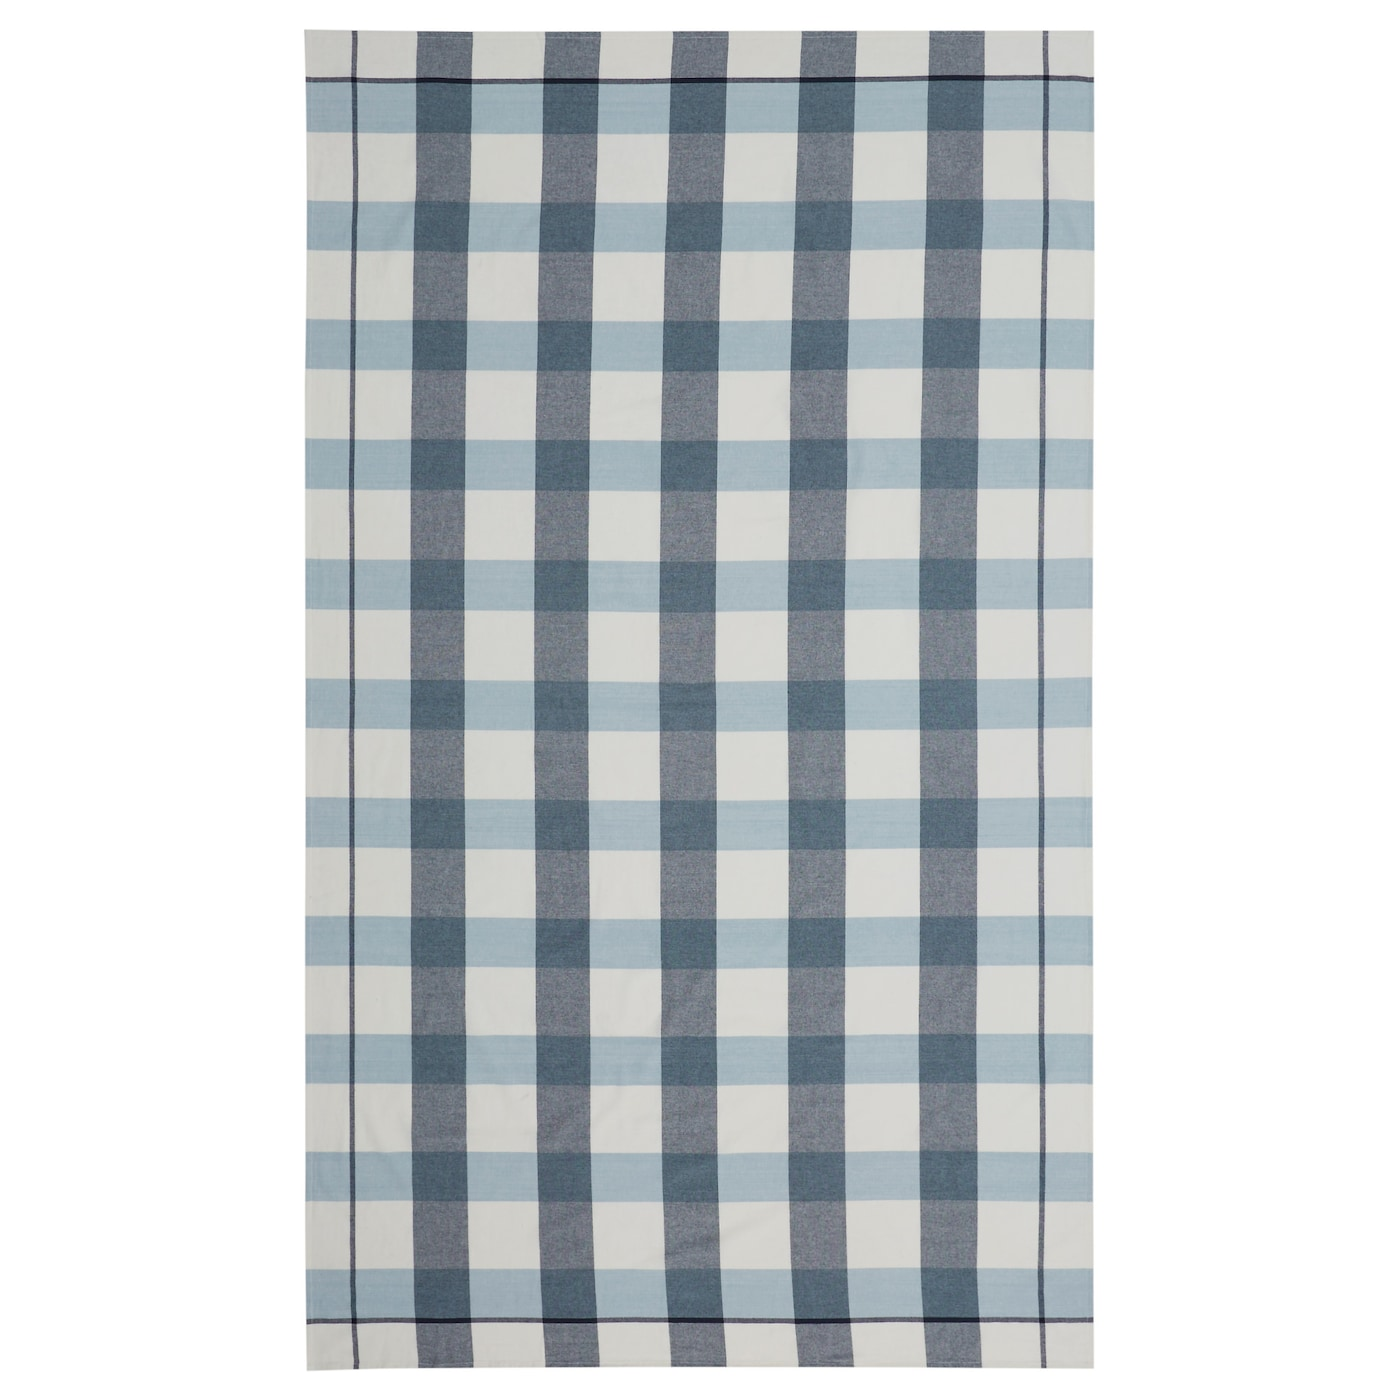 IKEA RUTIG tablecloth Colours are retained wash after wash thanks to the yarn-dyed cotton.